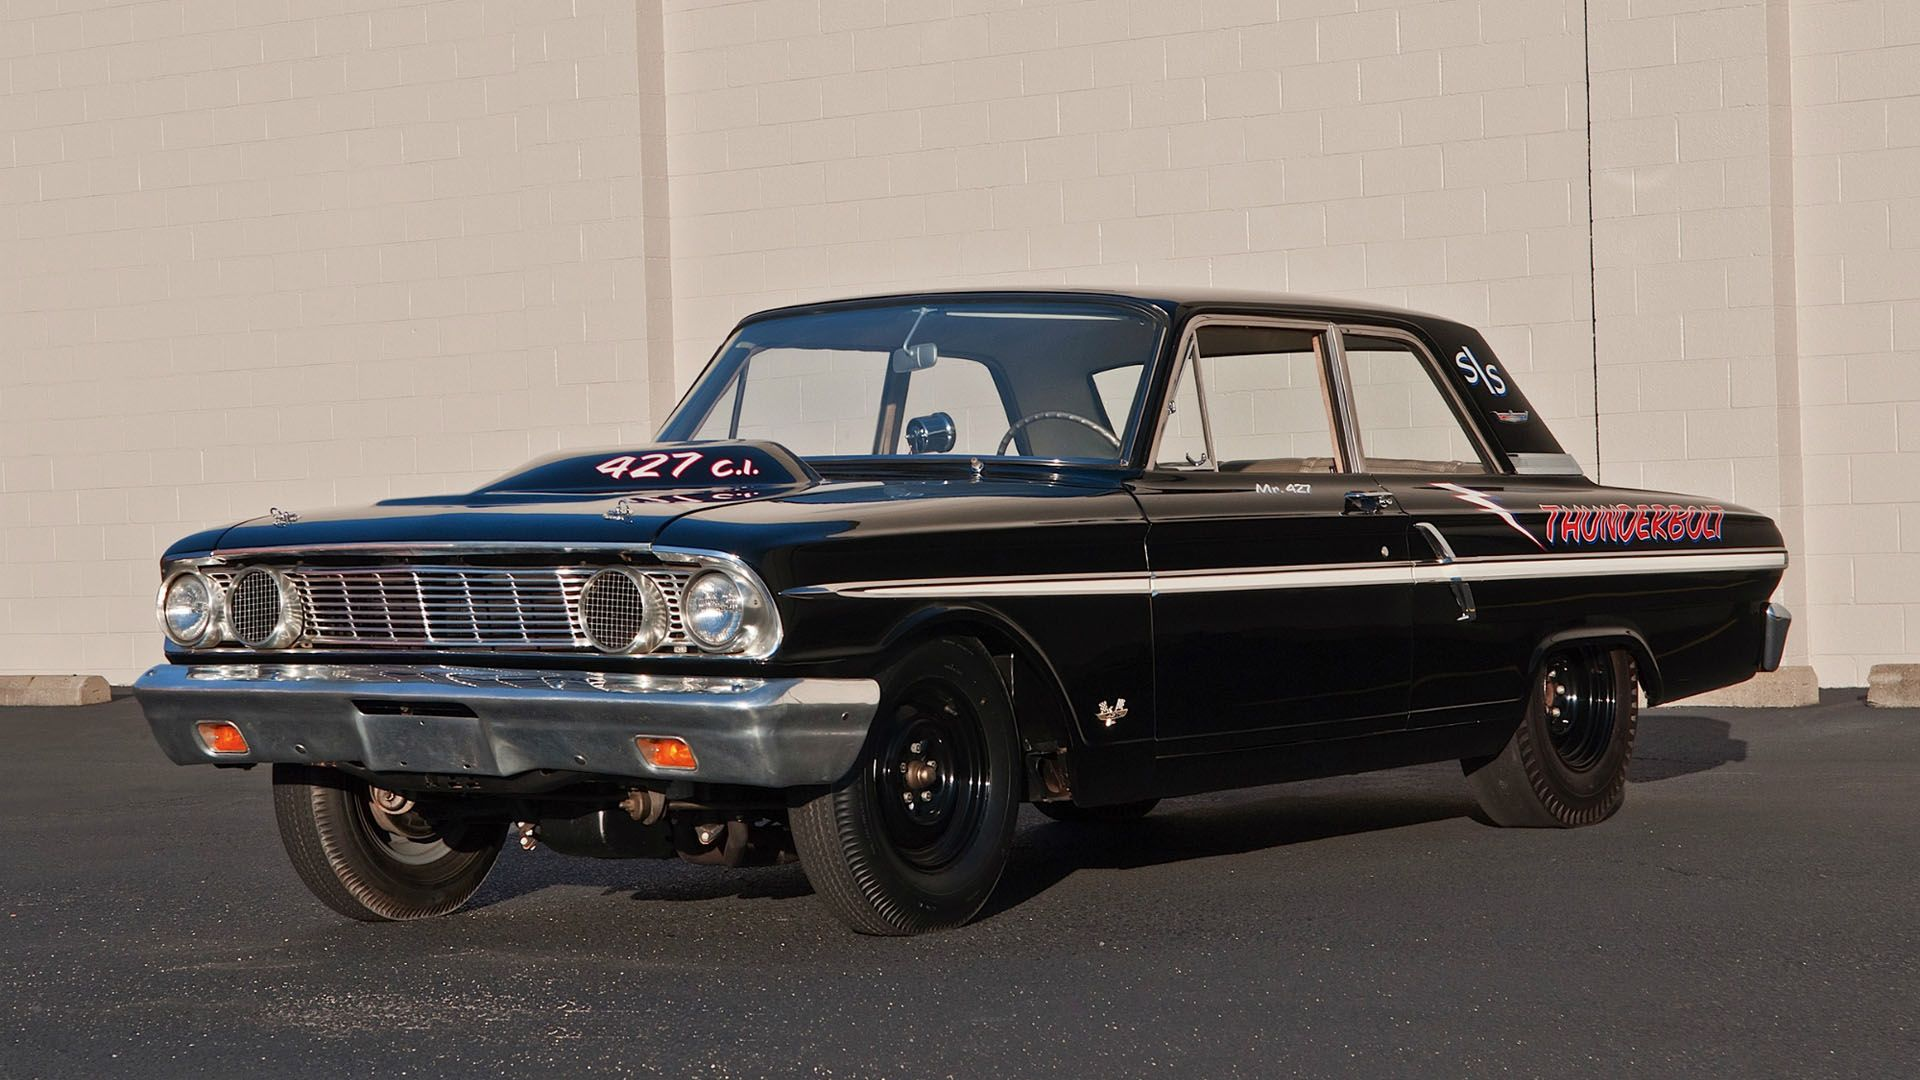 1964 ford thunderbolt 427 factory drag car at its finest